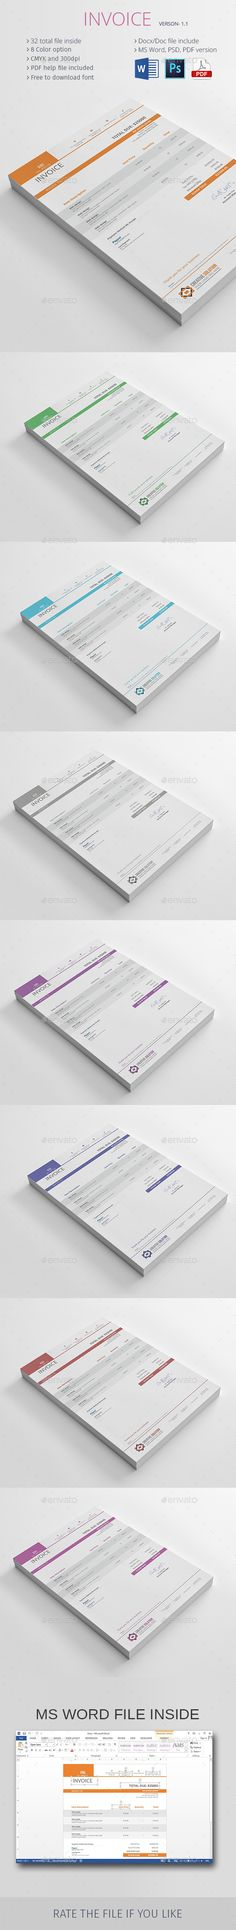 Modern Clean Invoice Template, Fonts and Proposal templates - design your own invoice